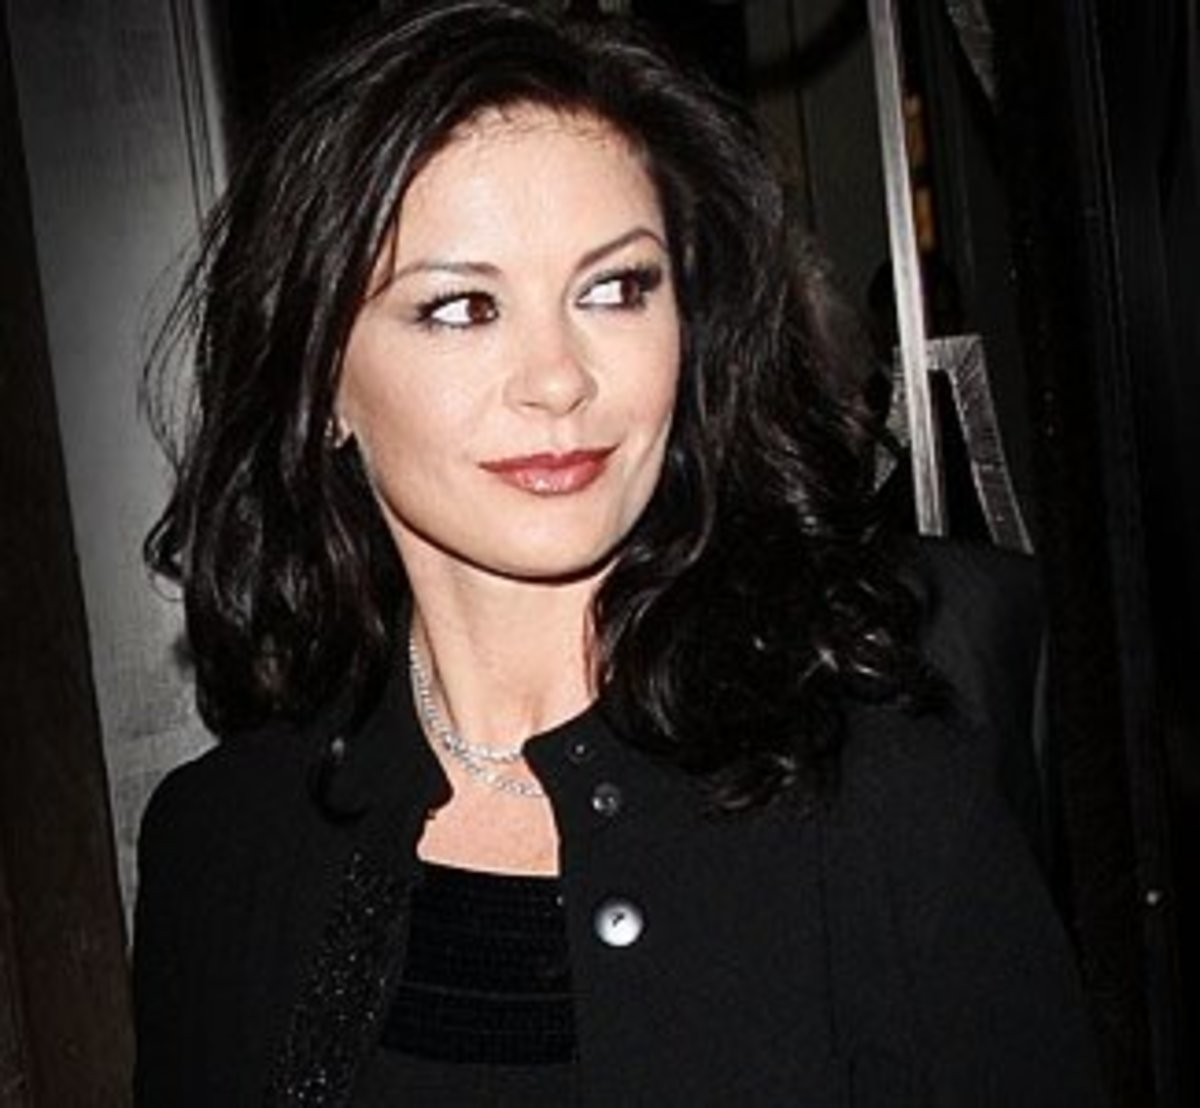 Welsh actress Catherine Zeta-Jones with jet black hair color